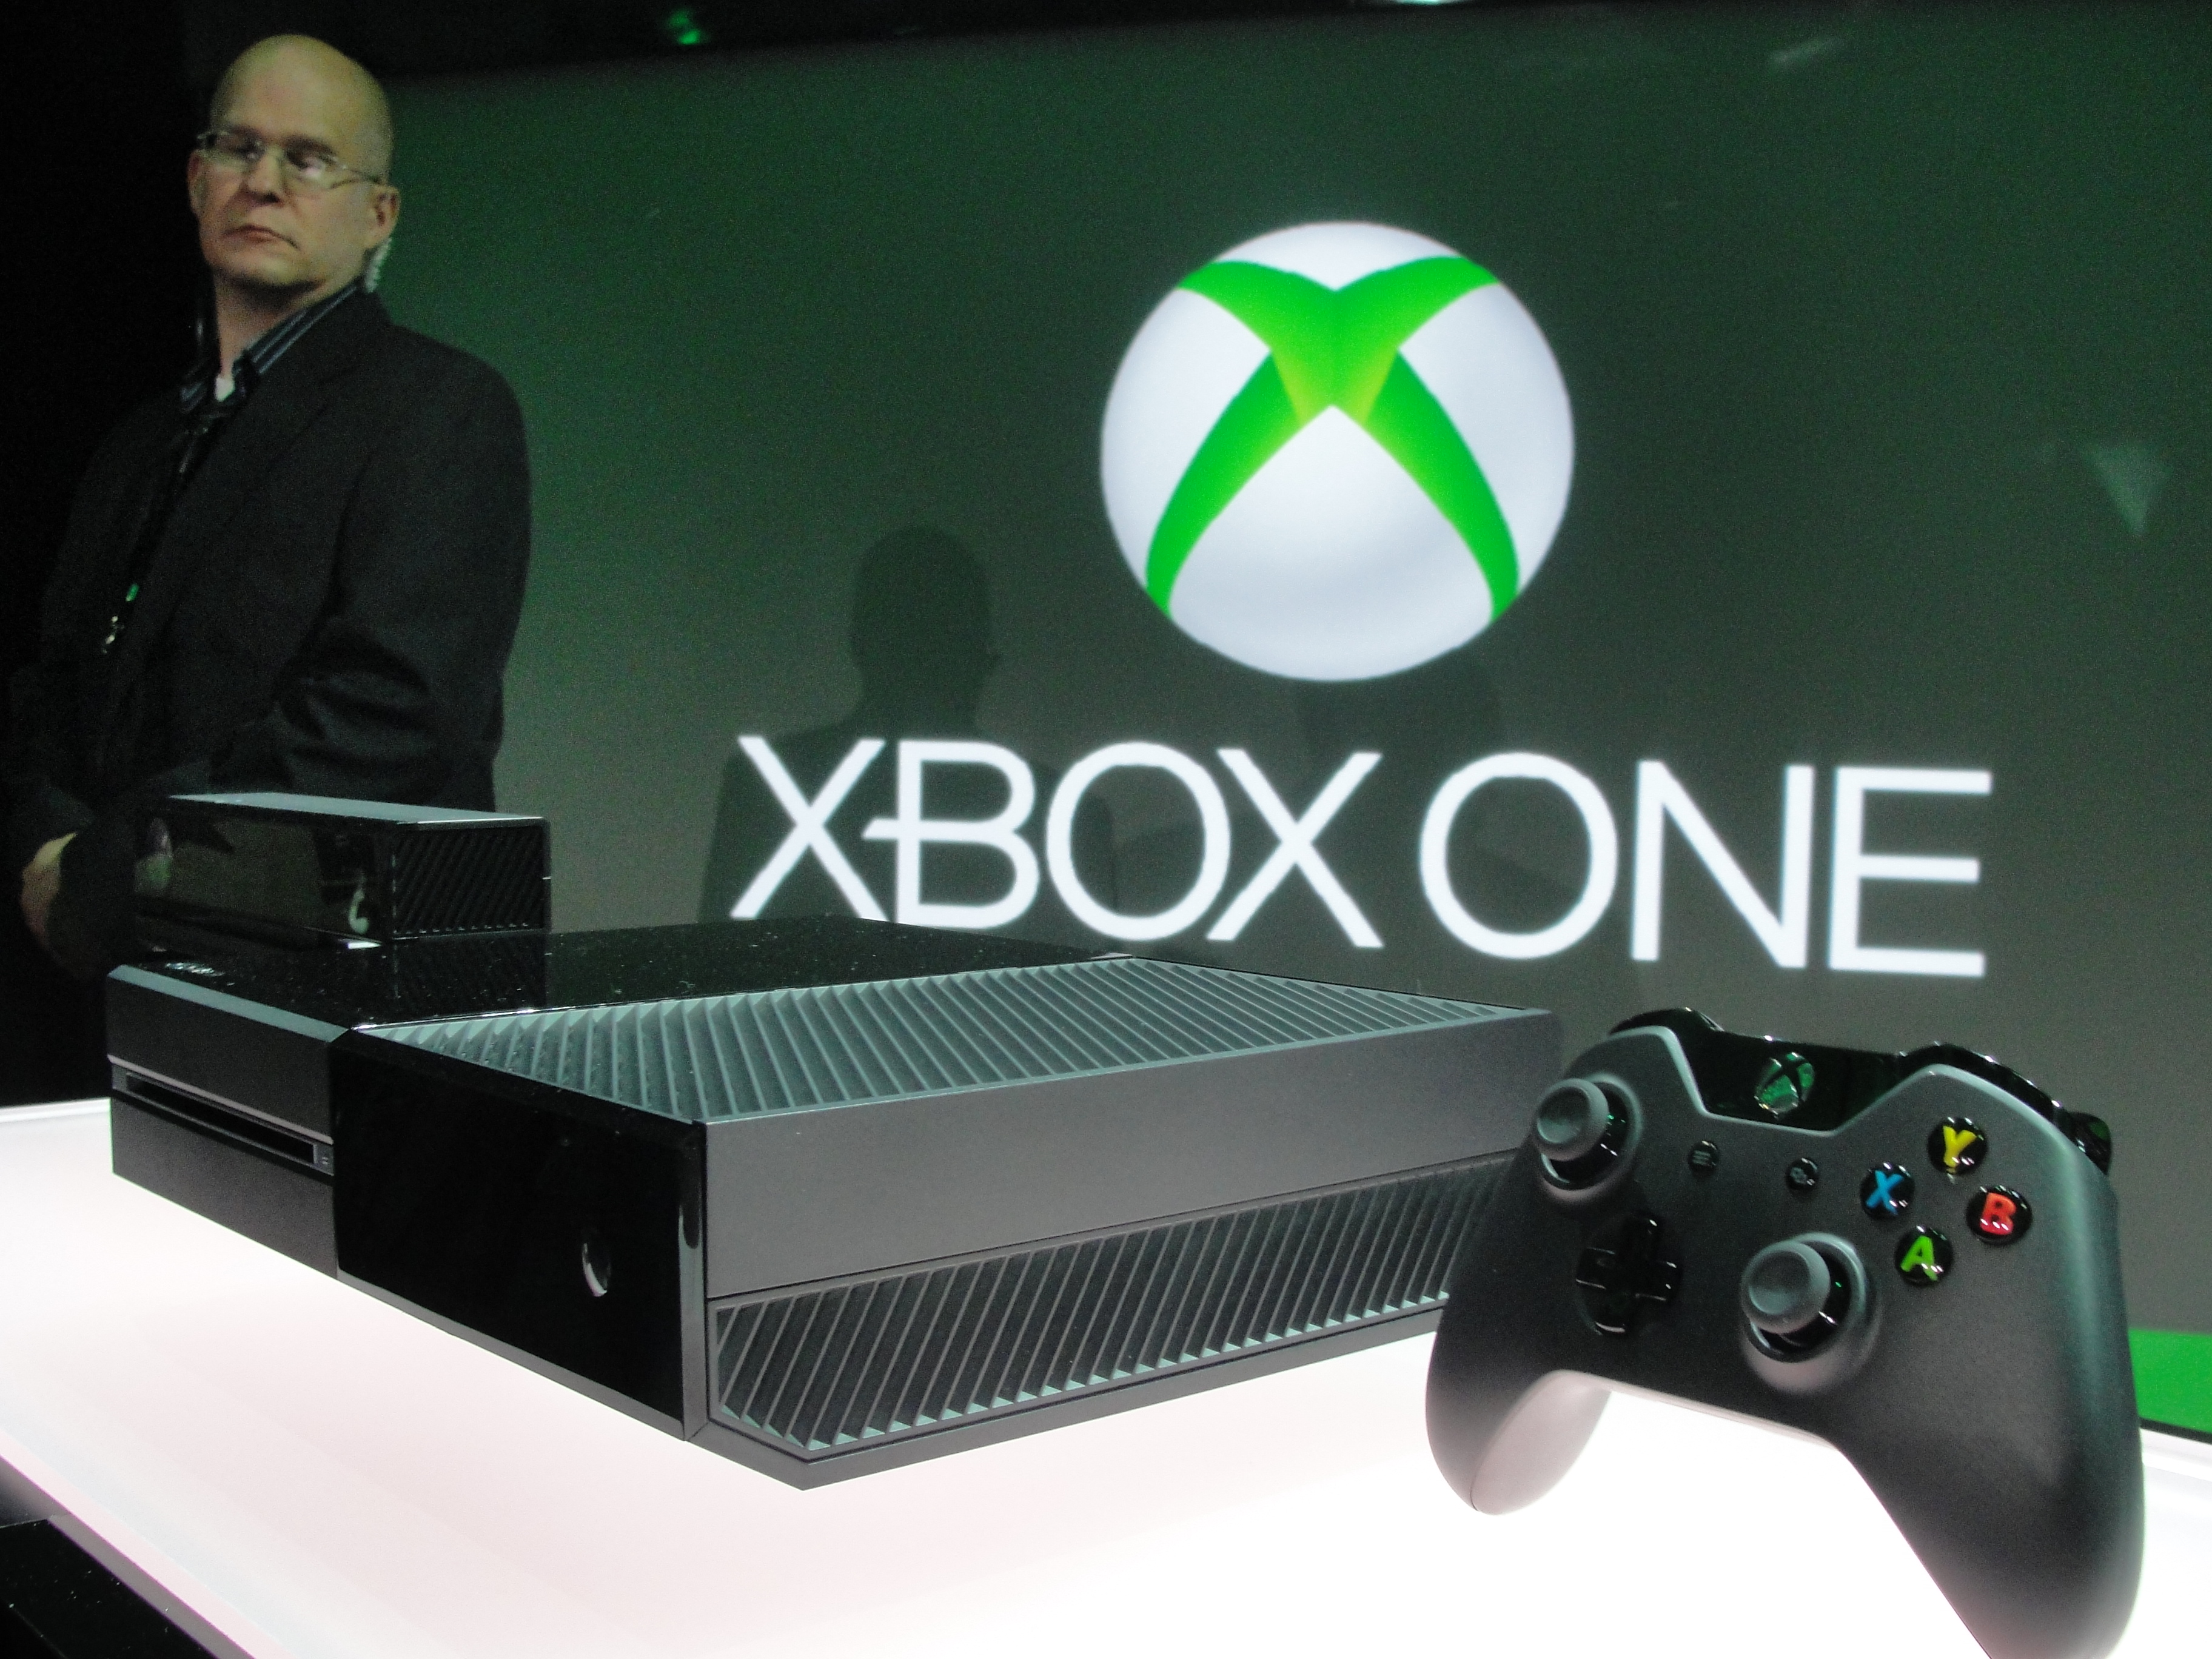 A member of the Microsoft security team watches over the newly unveiled Xbox One videogame console at the Microsoft campus in Redmond, Washington, on May 21, 2013.